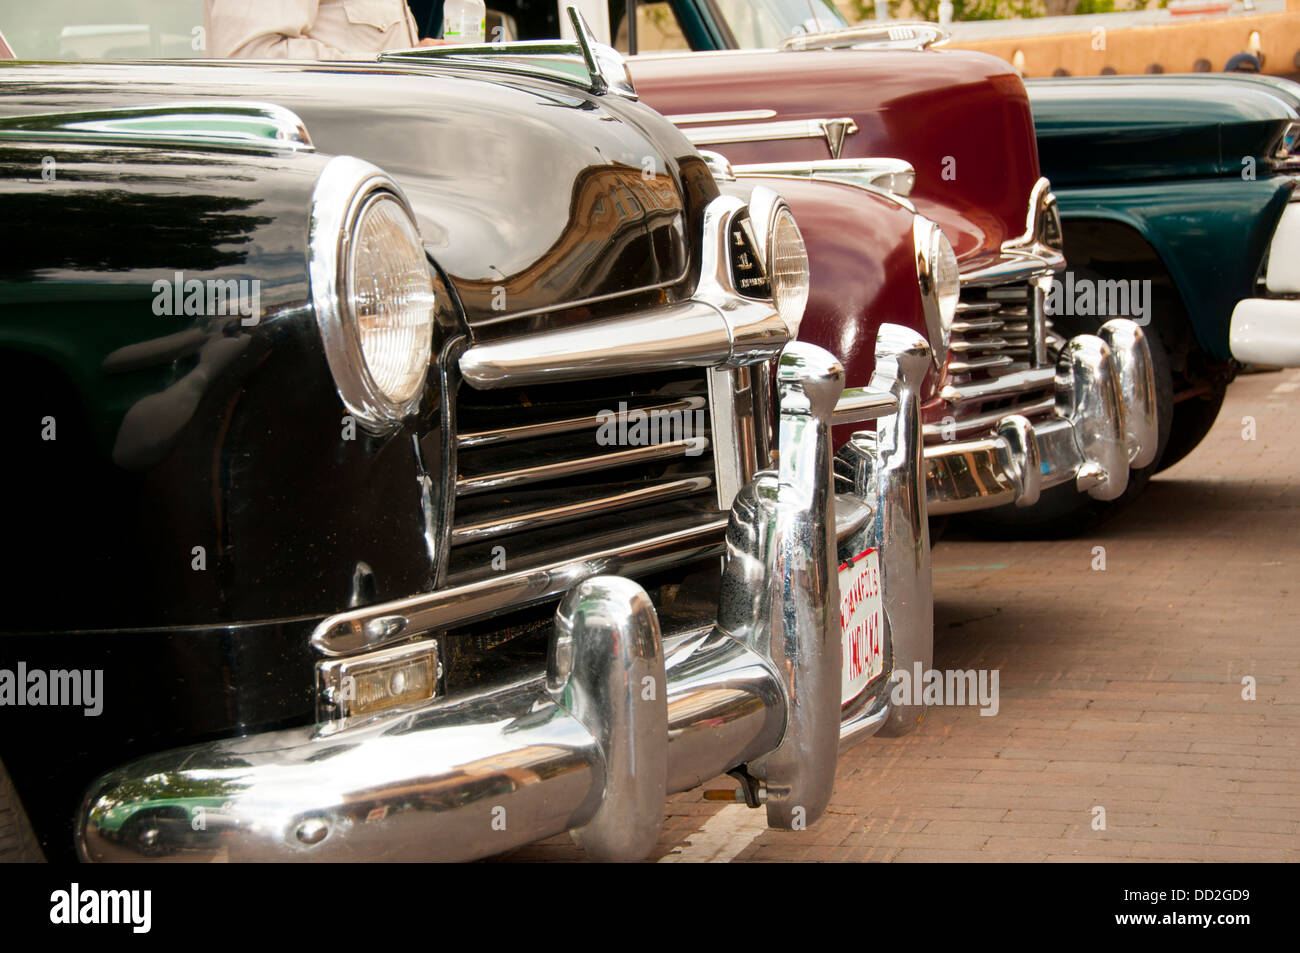 Vintage automobiles Photo Stock